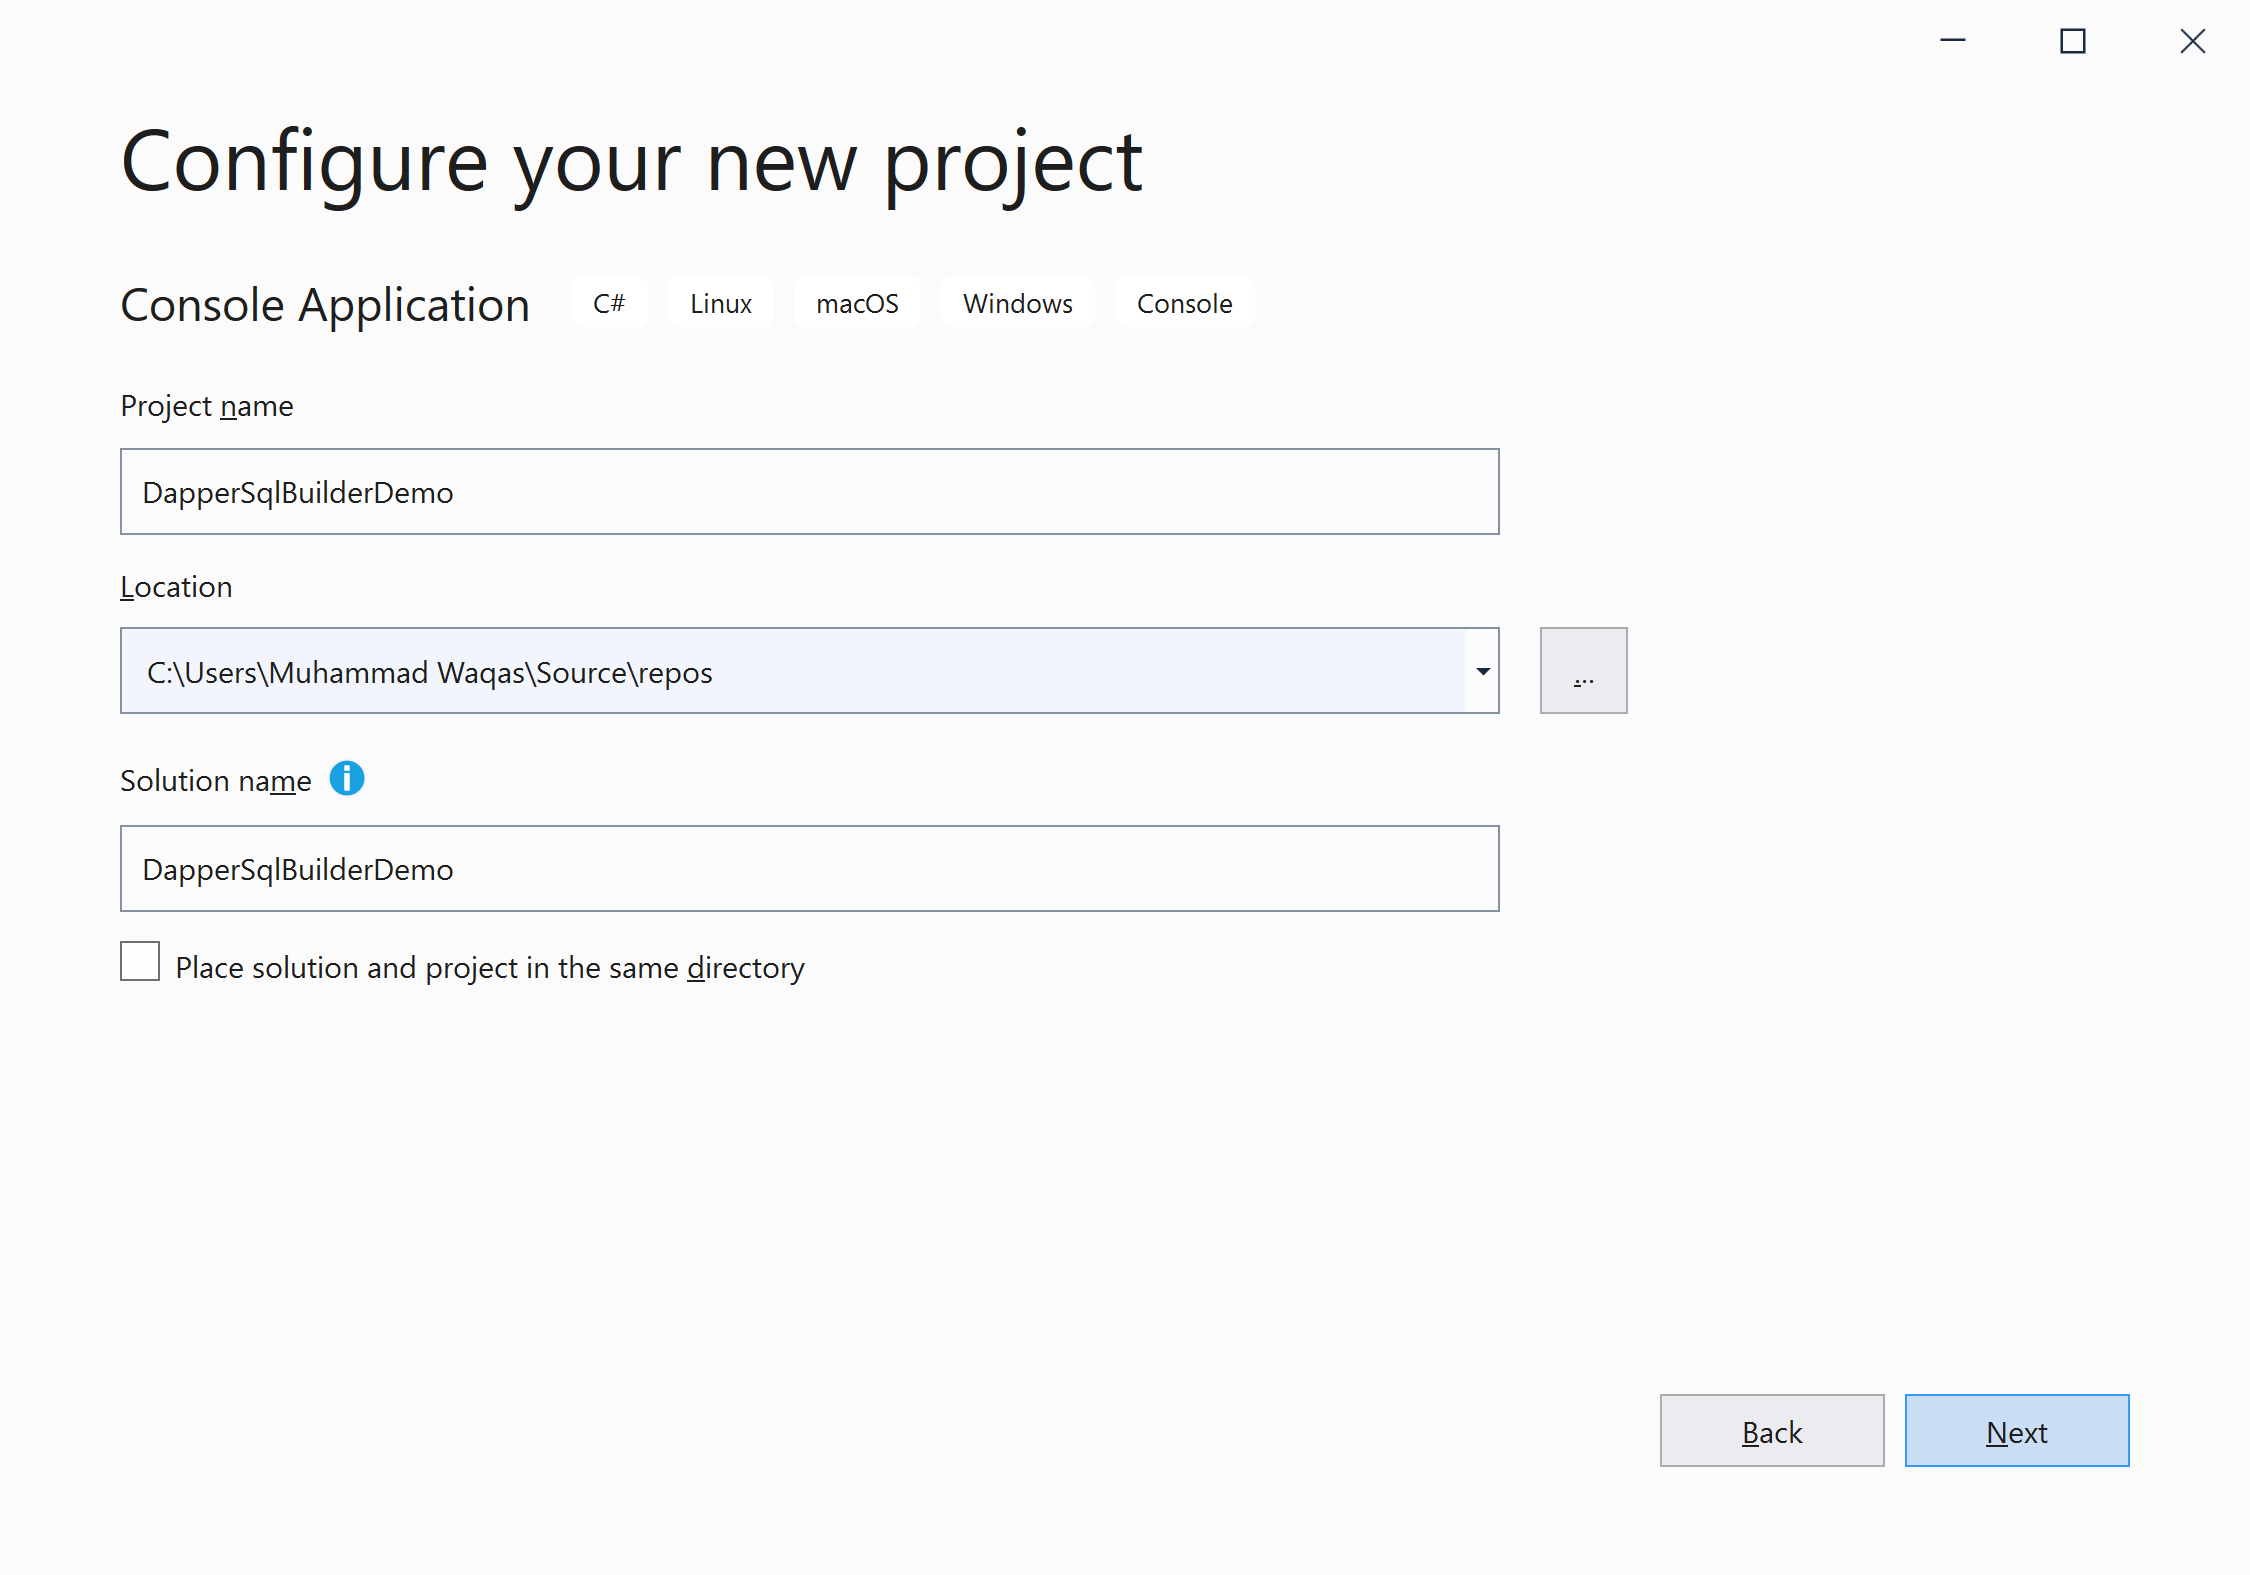 Configure your new project